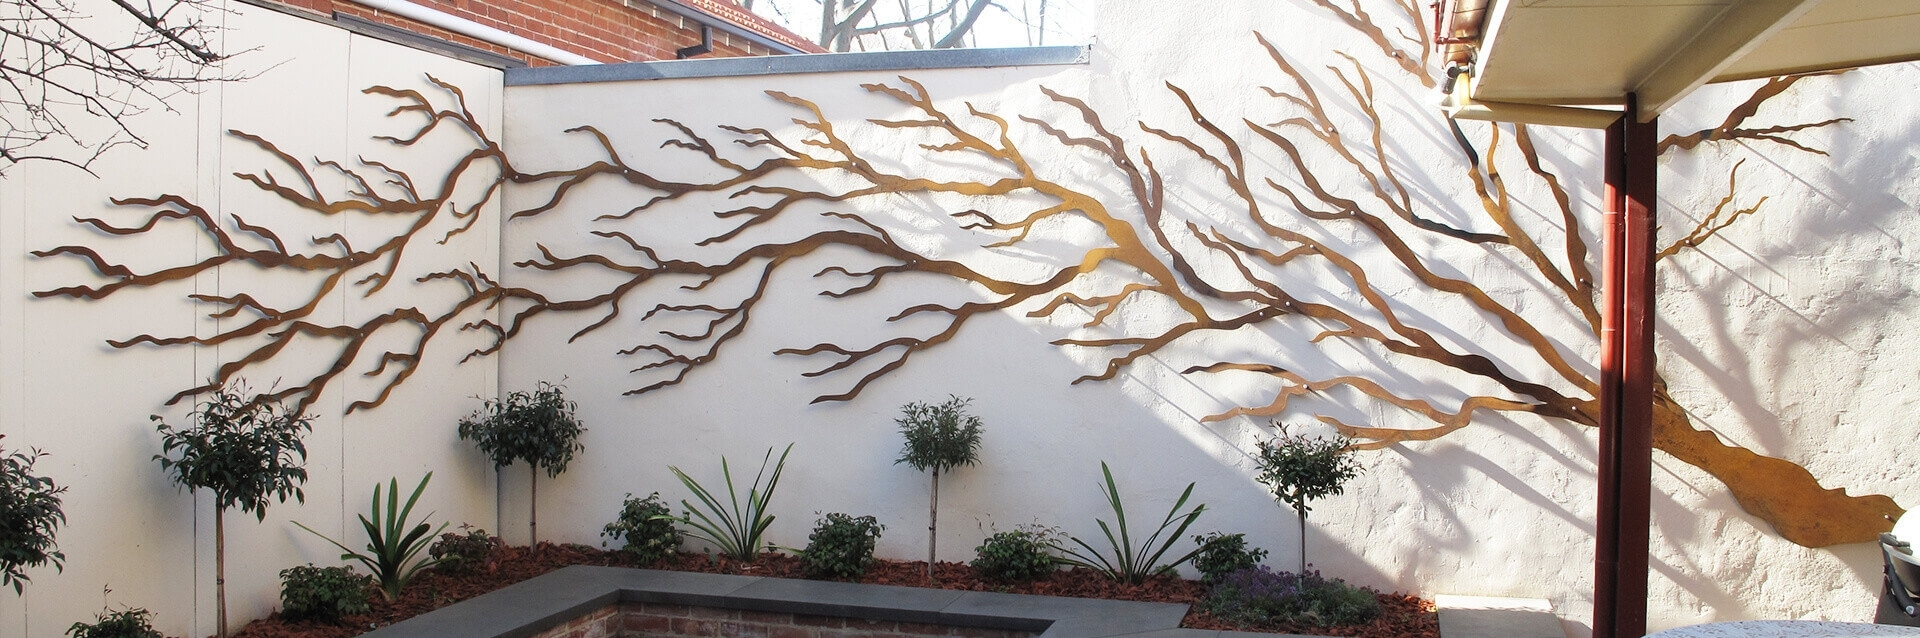 Outdoor : Metal Wall Sculpture Outdoor Wall Decorations Garden Inside 2018 Australia Wall Accents (View 5 of 15)